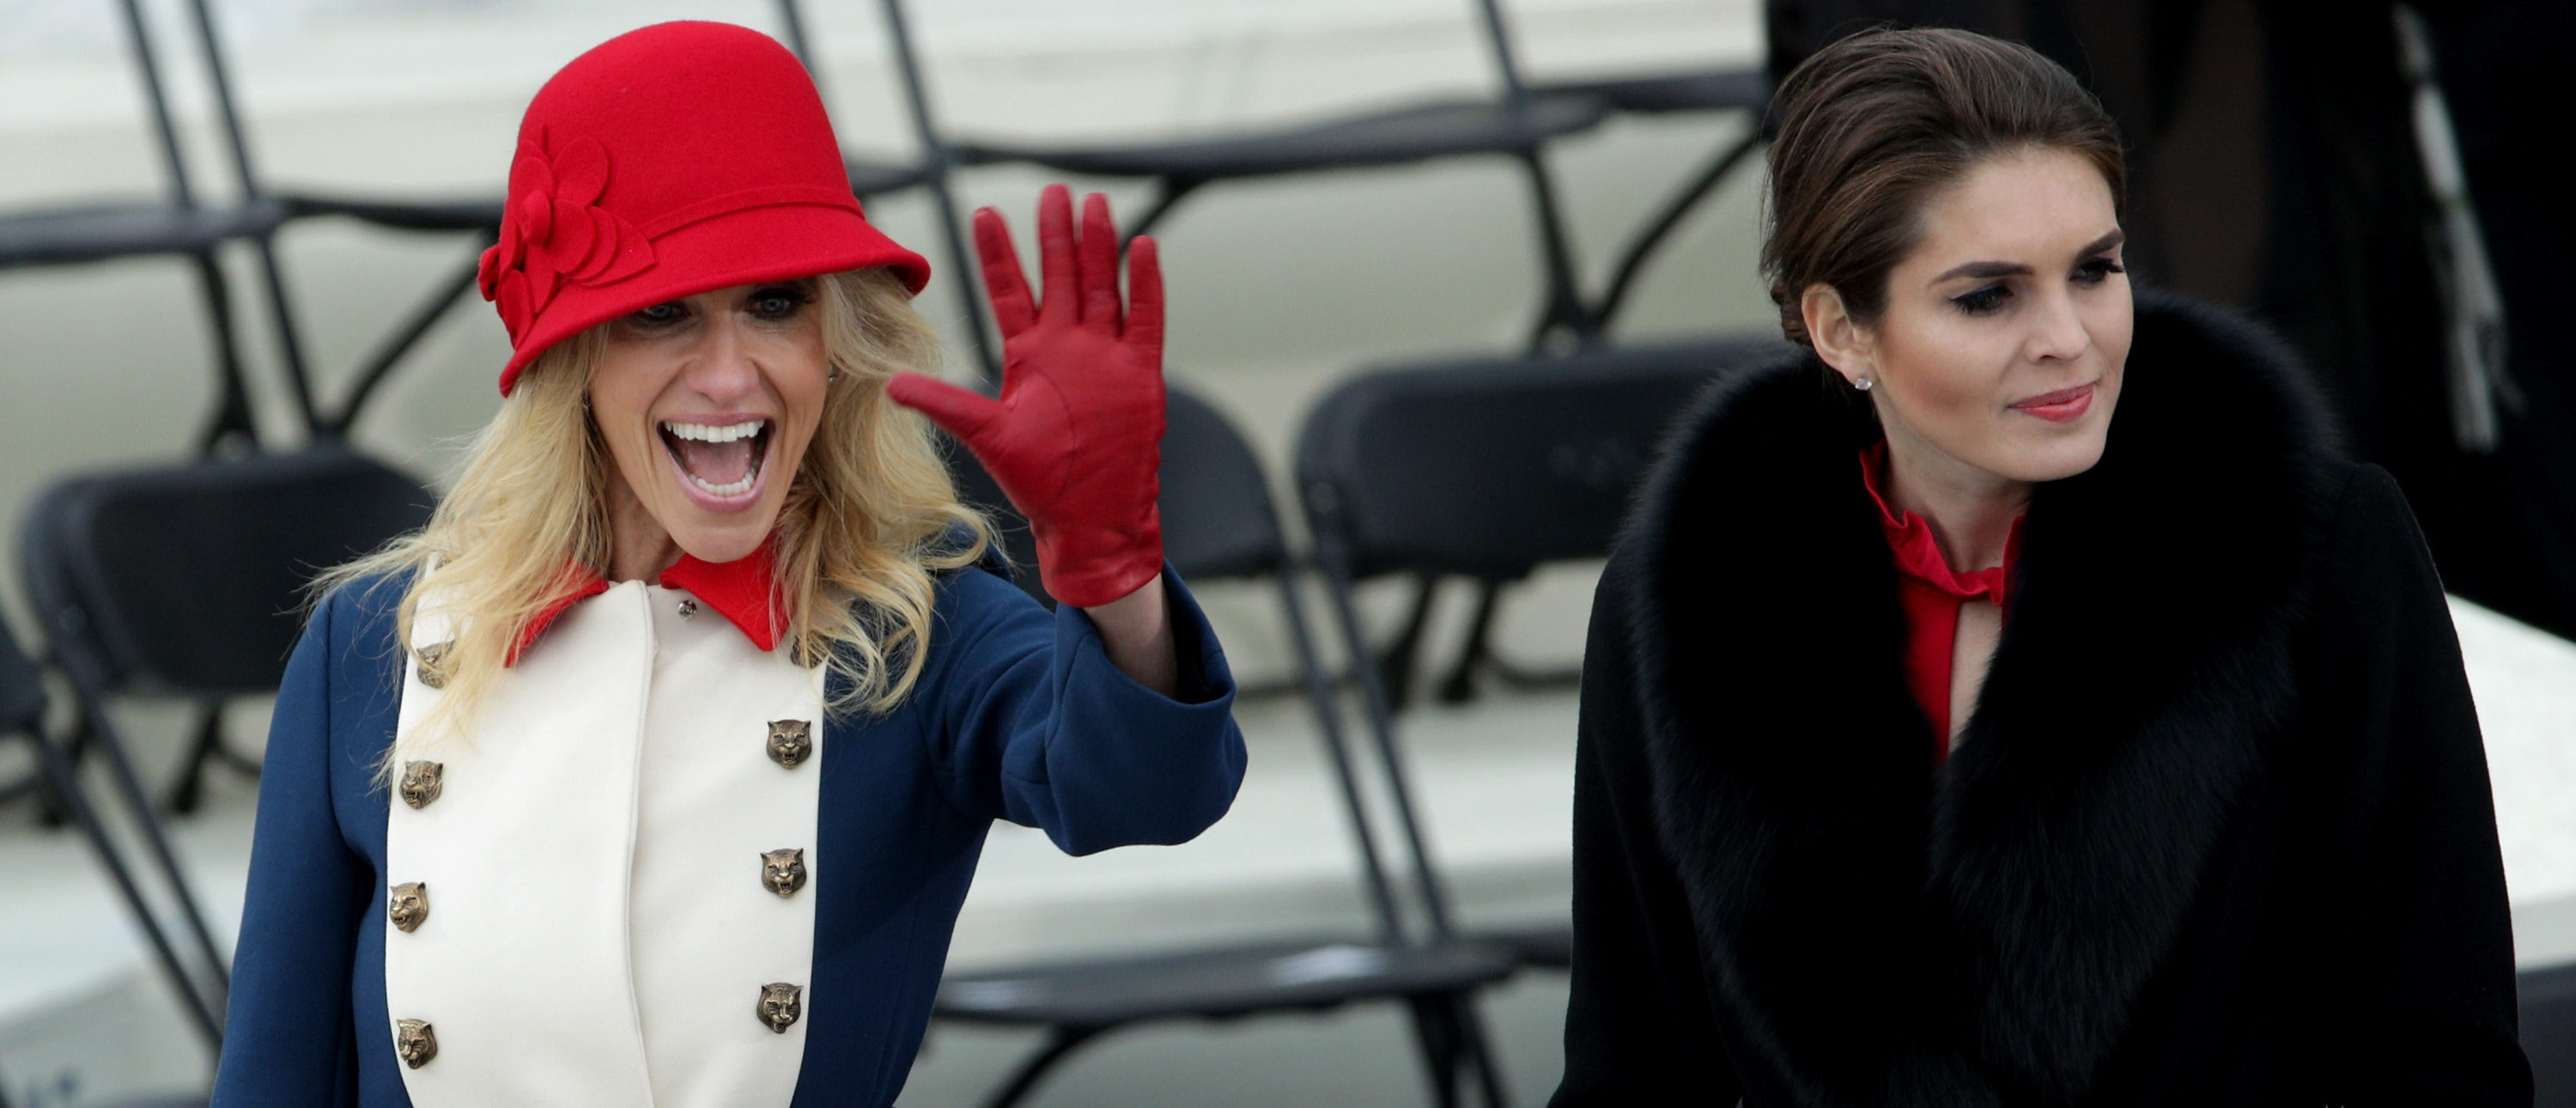 WASHINGTON, DC - JANUARY 20: Trump advisers Kellyanne Conway (L) and Hope Hicks on the West Front of the U.S. Capitol on January 20, 2017 in Washington, DC. In today's inauguration ceremony Donald J. Trump becomes the 45th president of the United States. (Photo by Alex Wong/Getty Images)